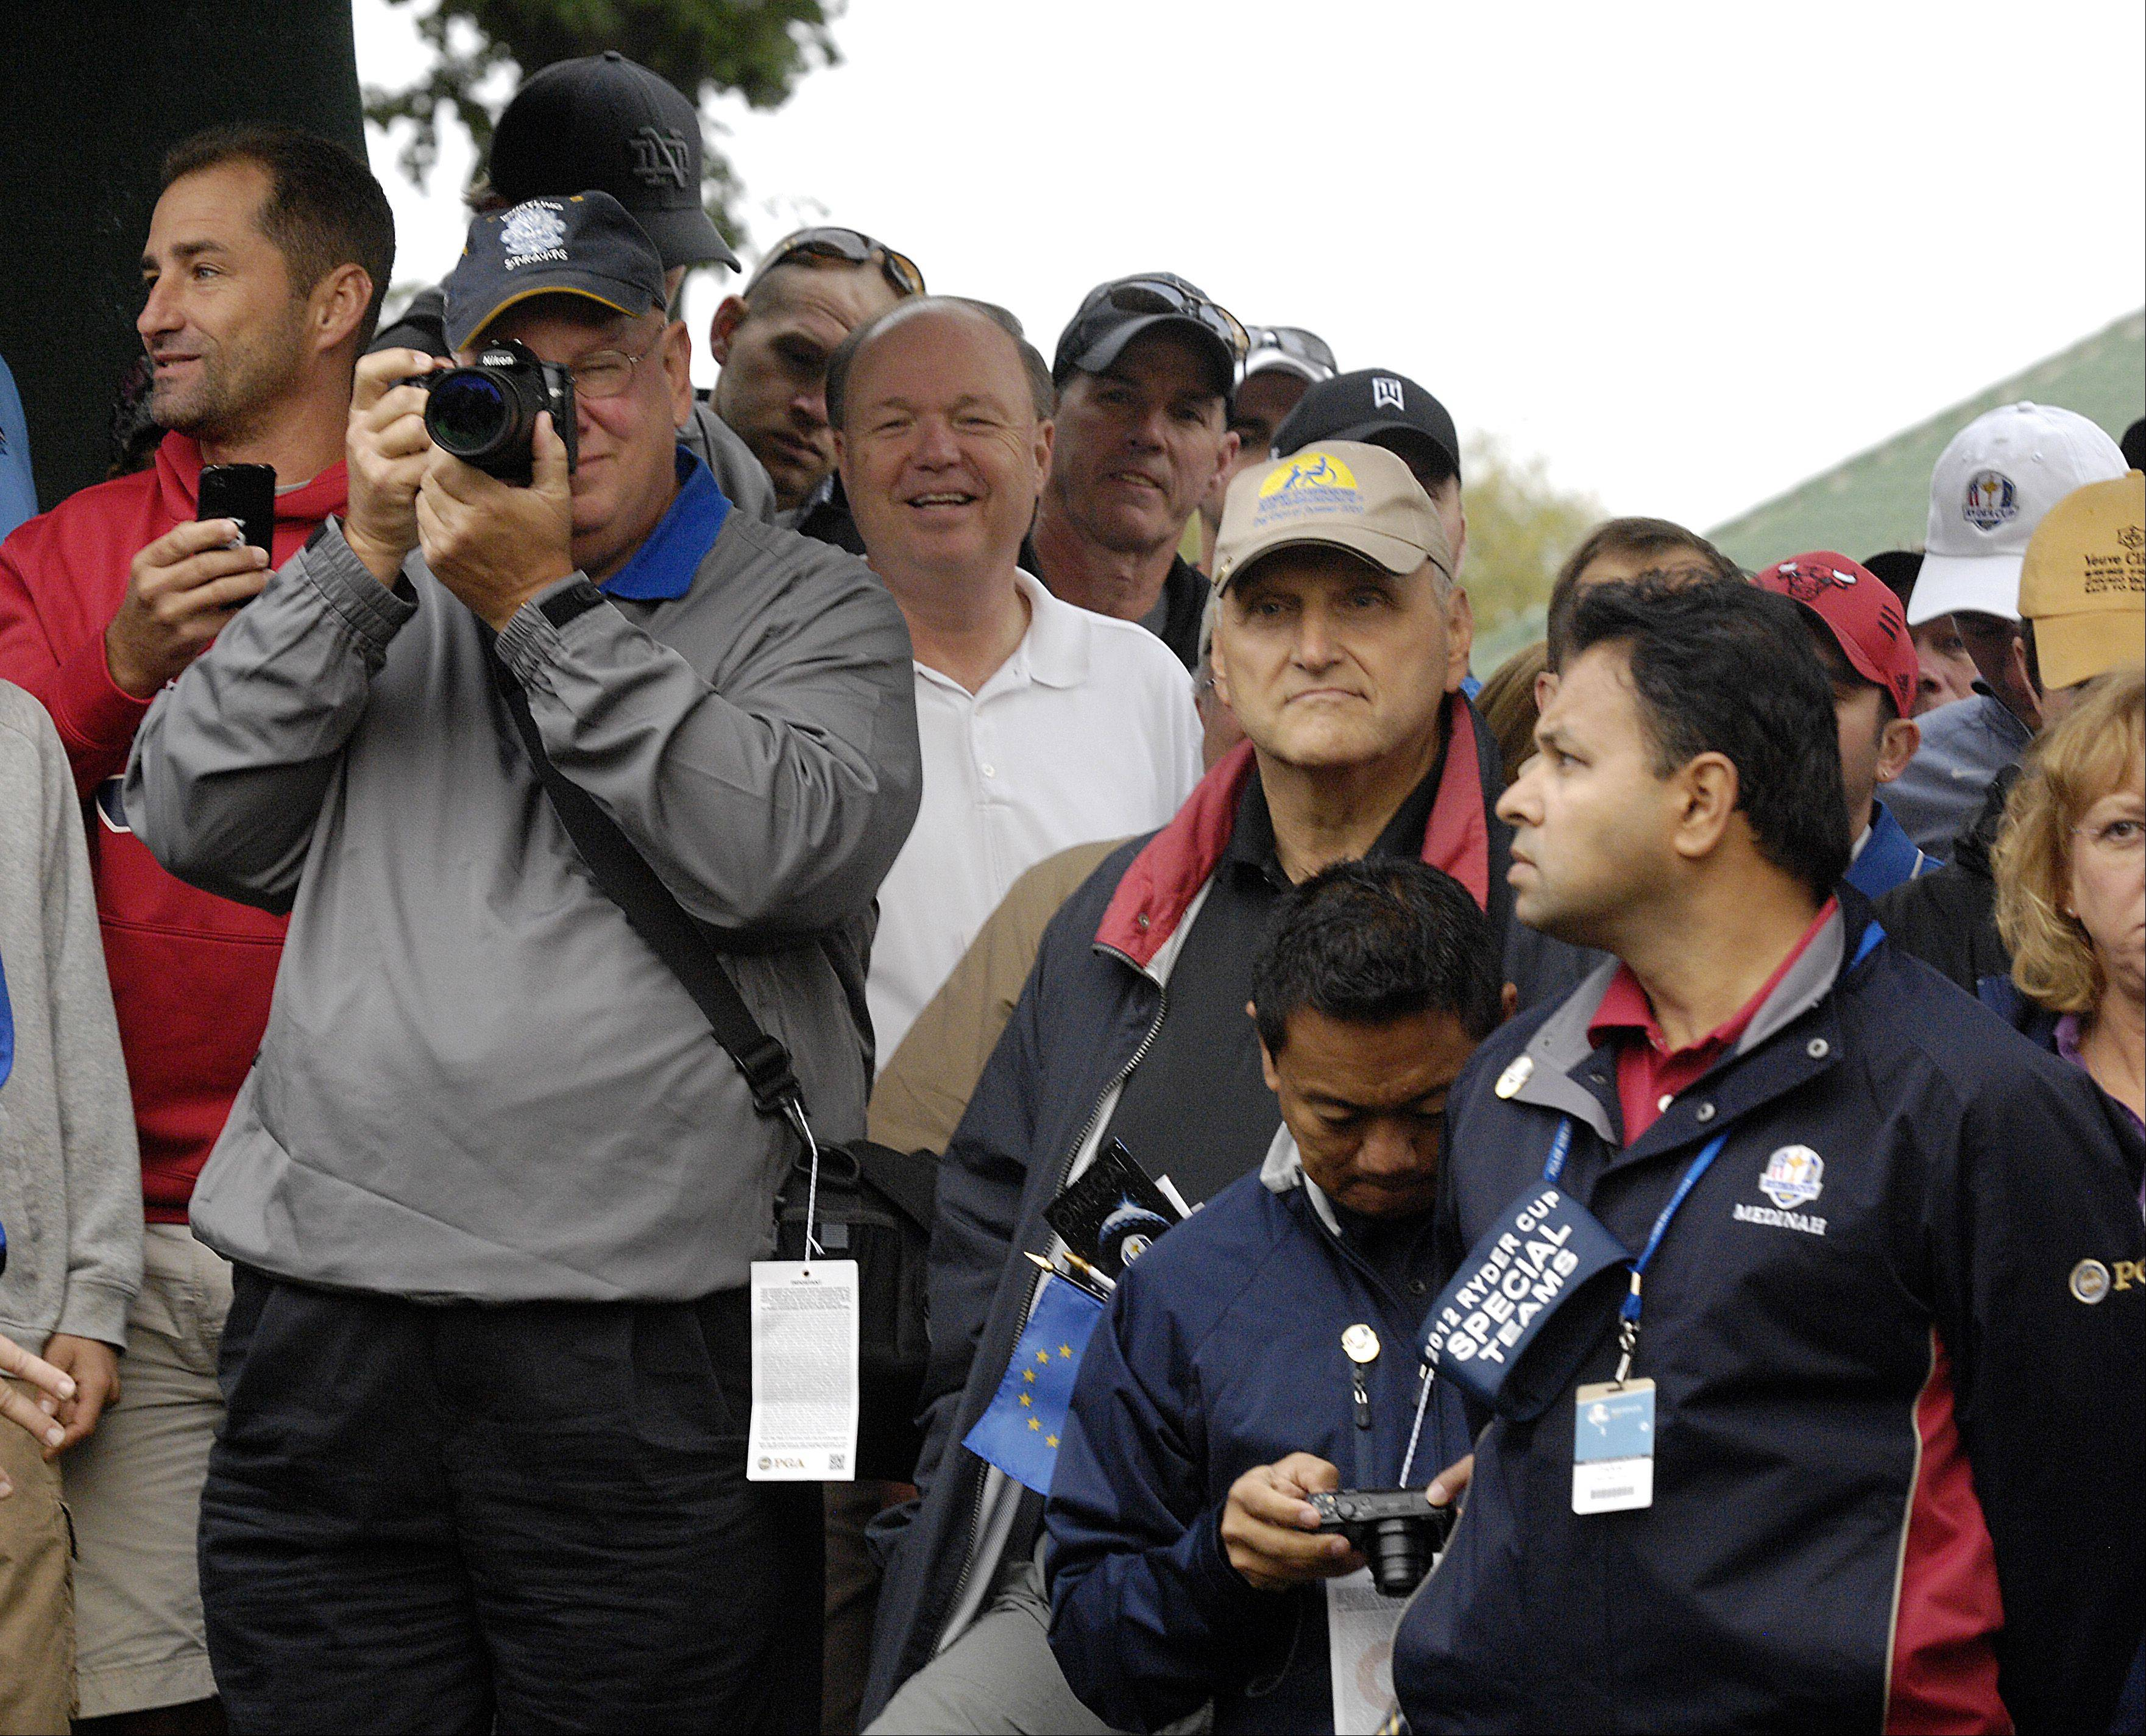 Golf fans try to get a photo and glimpse of the European Ryder Cup team.